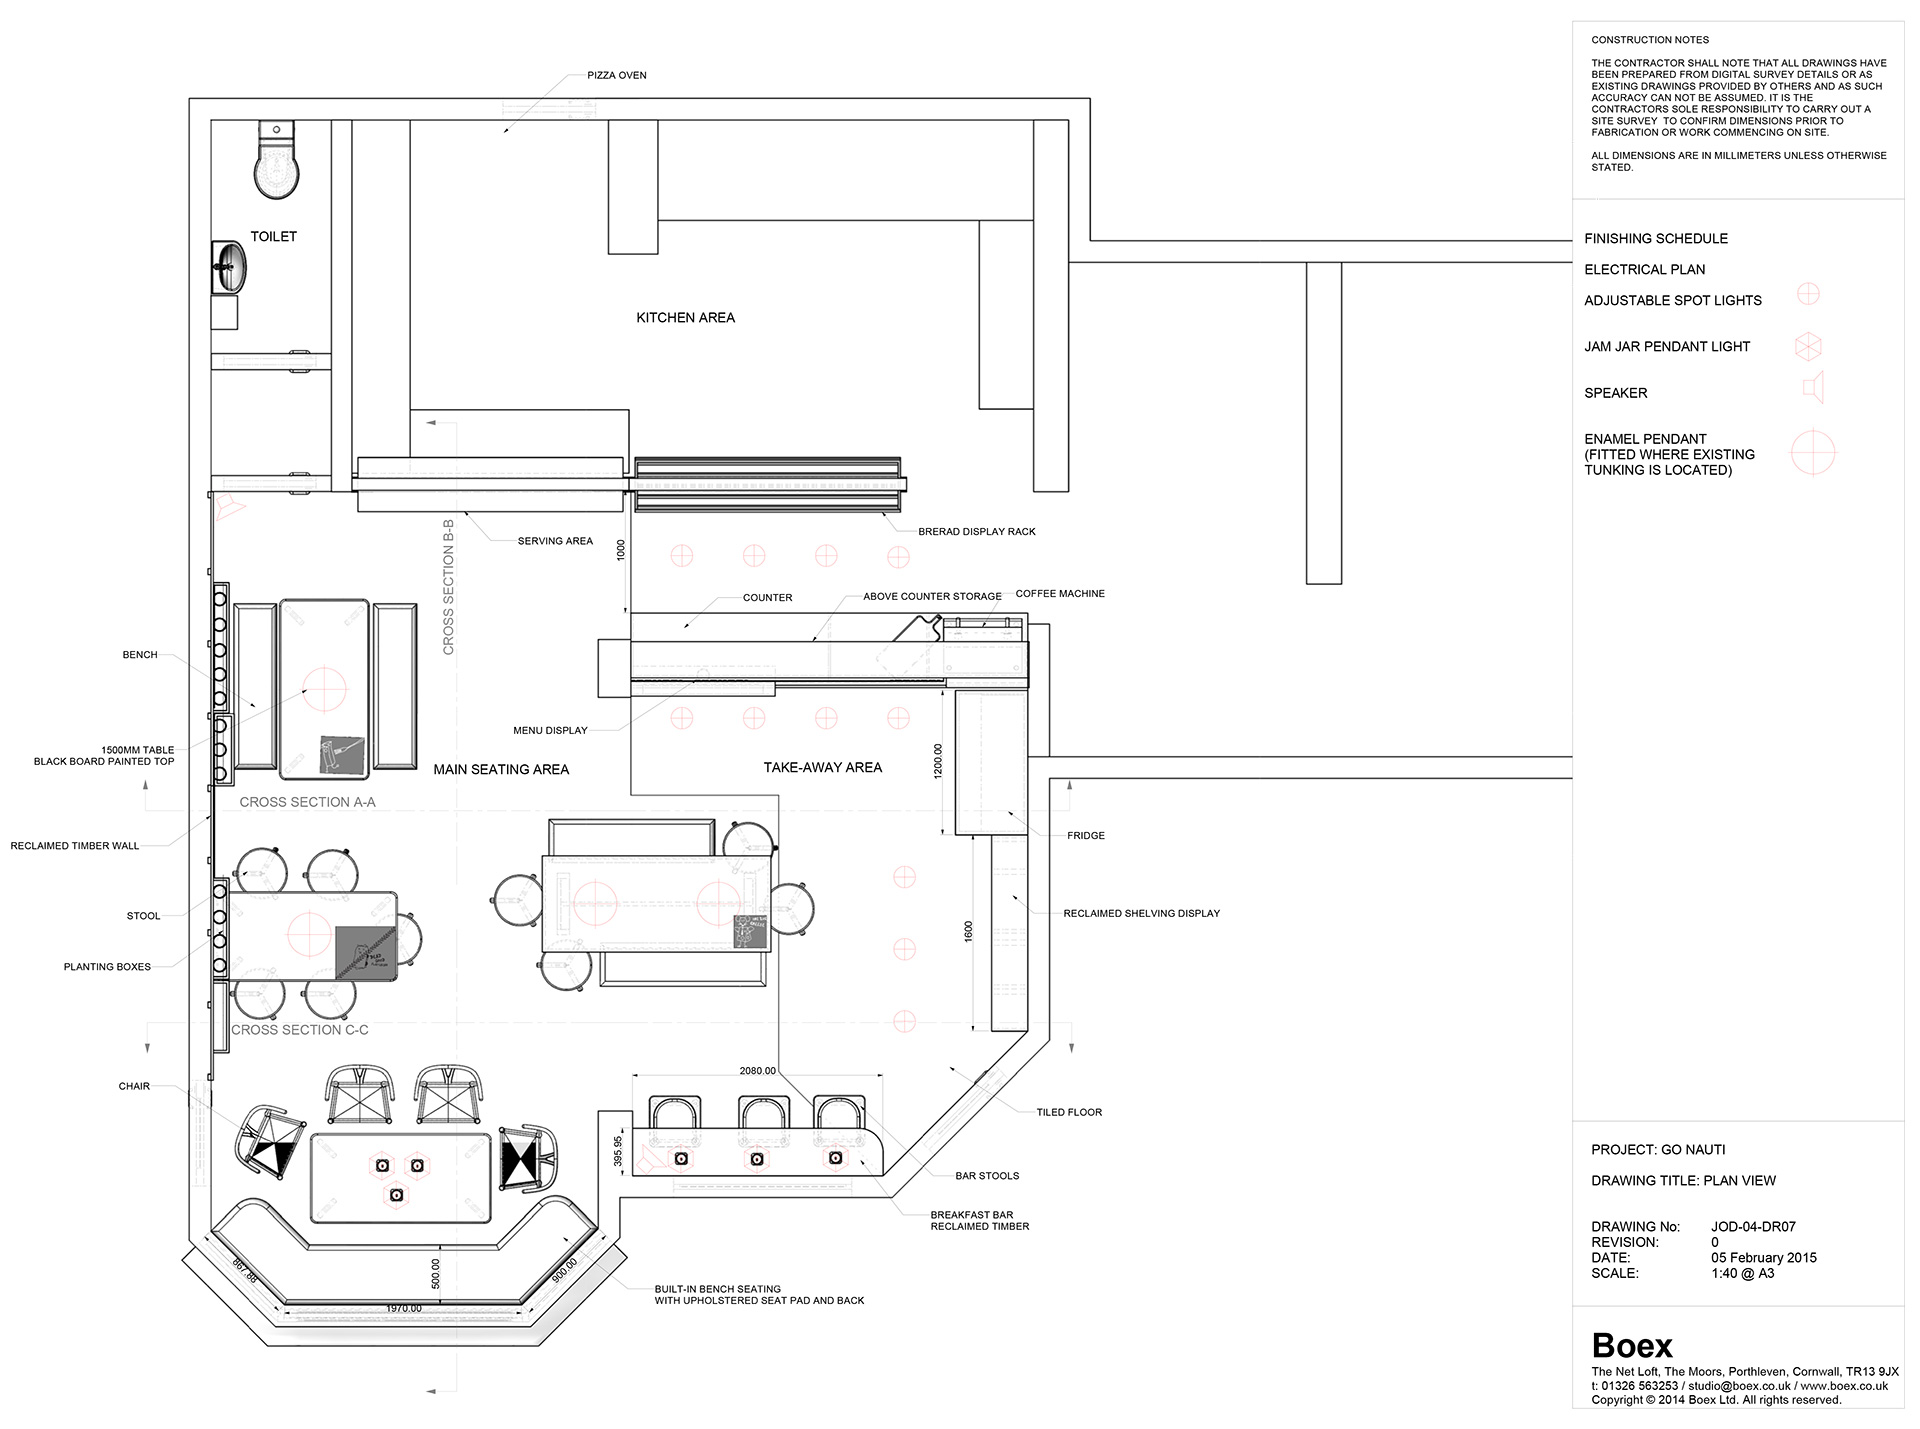 Space Planning for Go Nauti cafe design